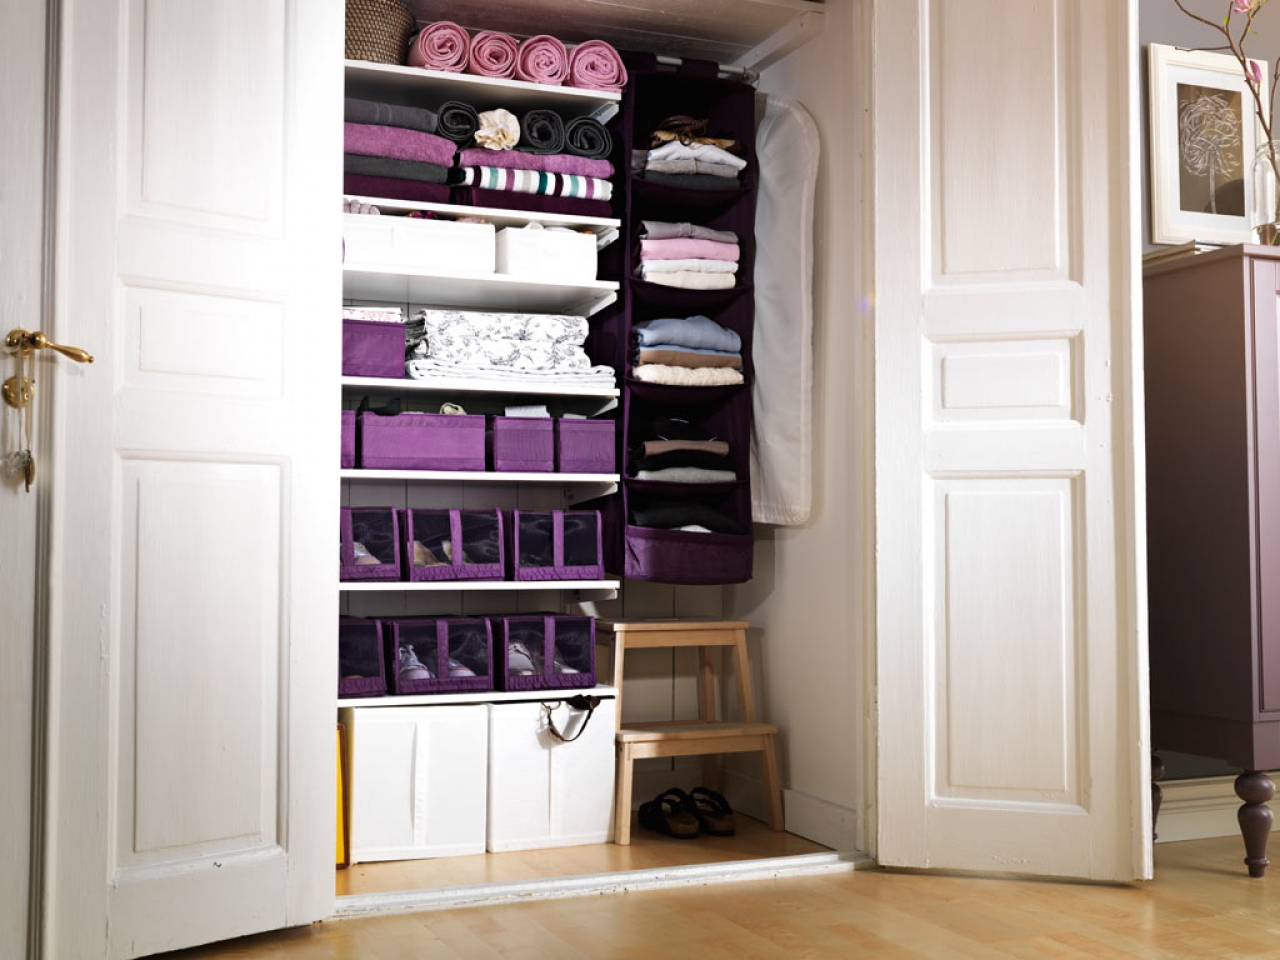 http://www.nanobuffet.com/size/1280x960/server22-cdn/2016/04/29/wardrobe-storage-ideas-from-hats-to-heels-sbf-wood-storage-ideas-fd512a0d3cdb5630.jpg